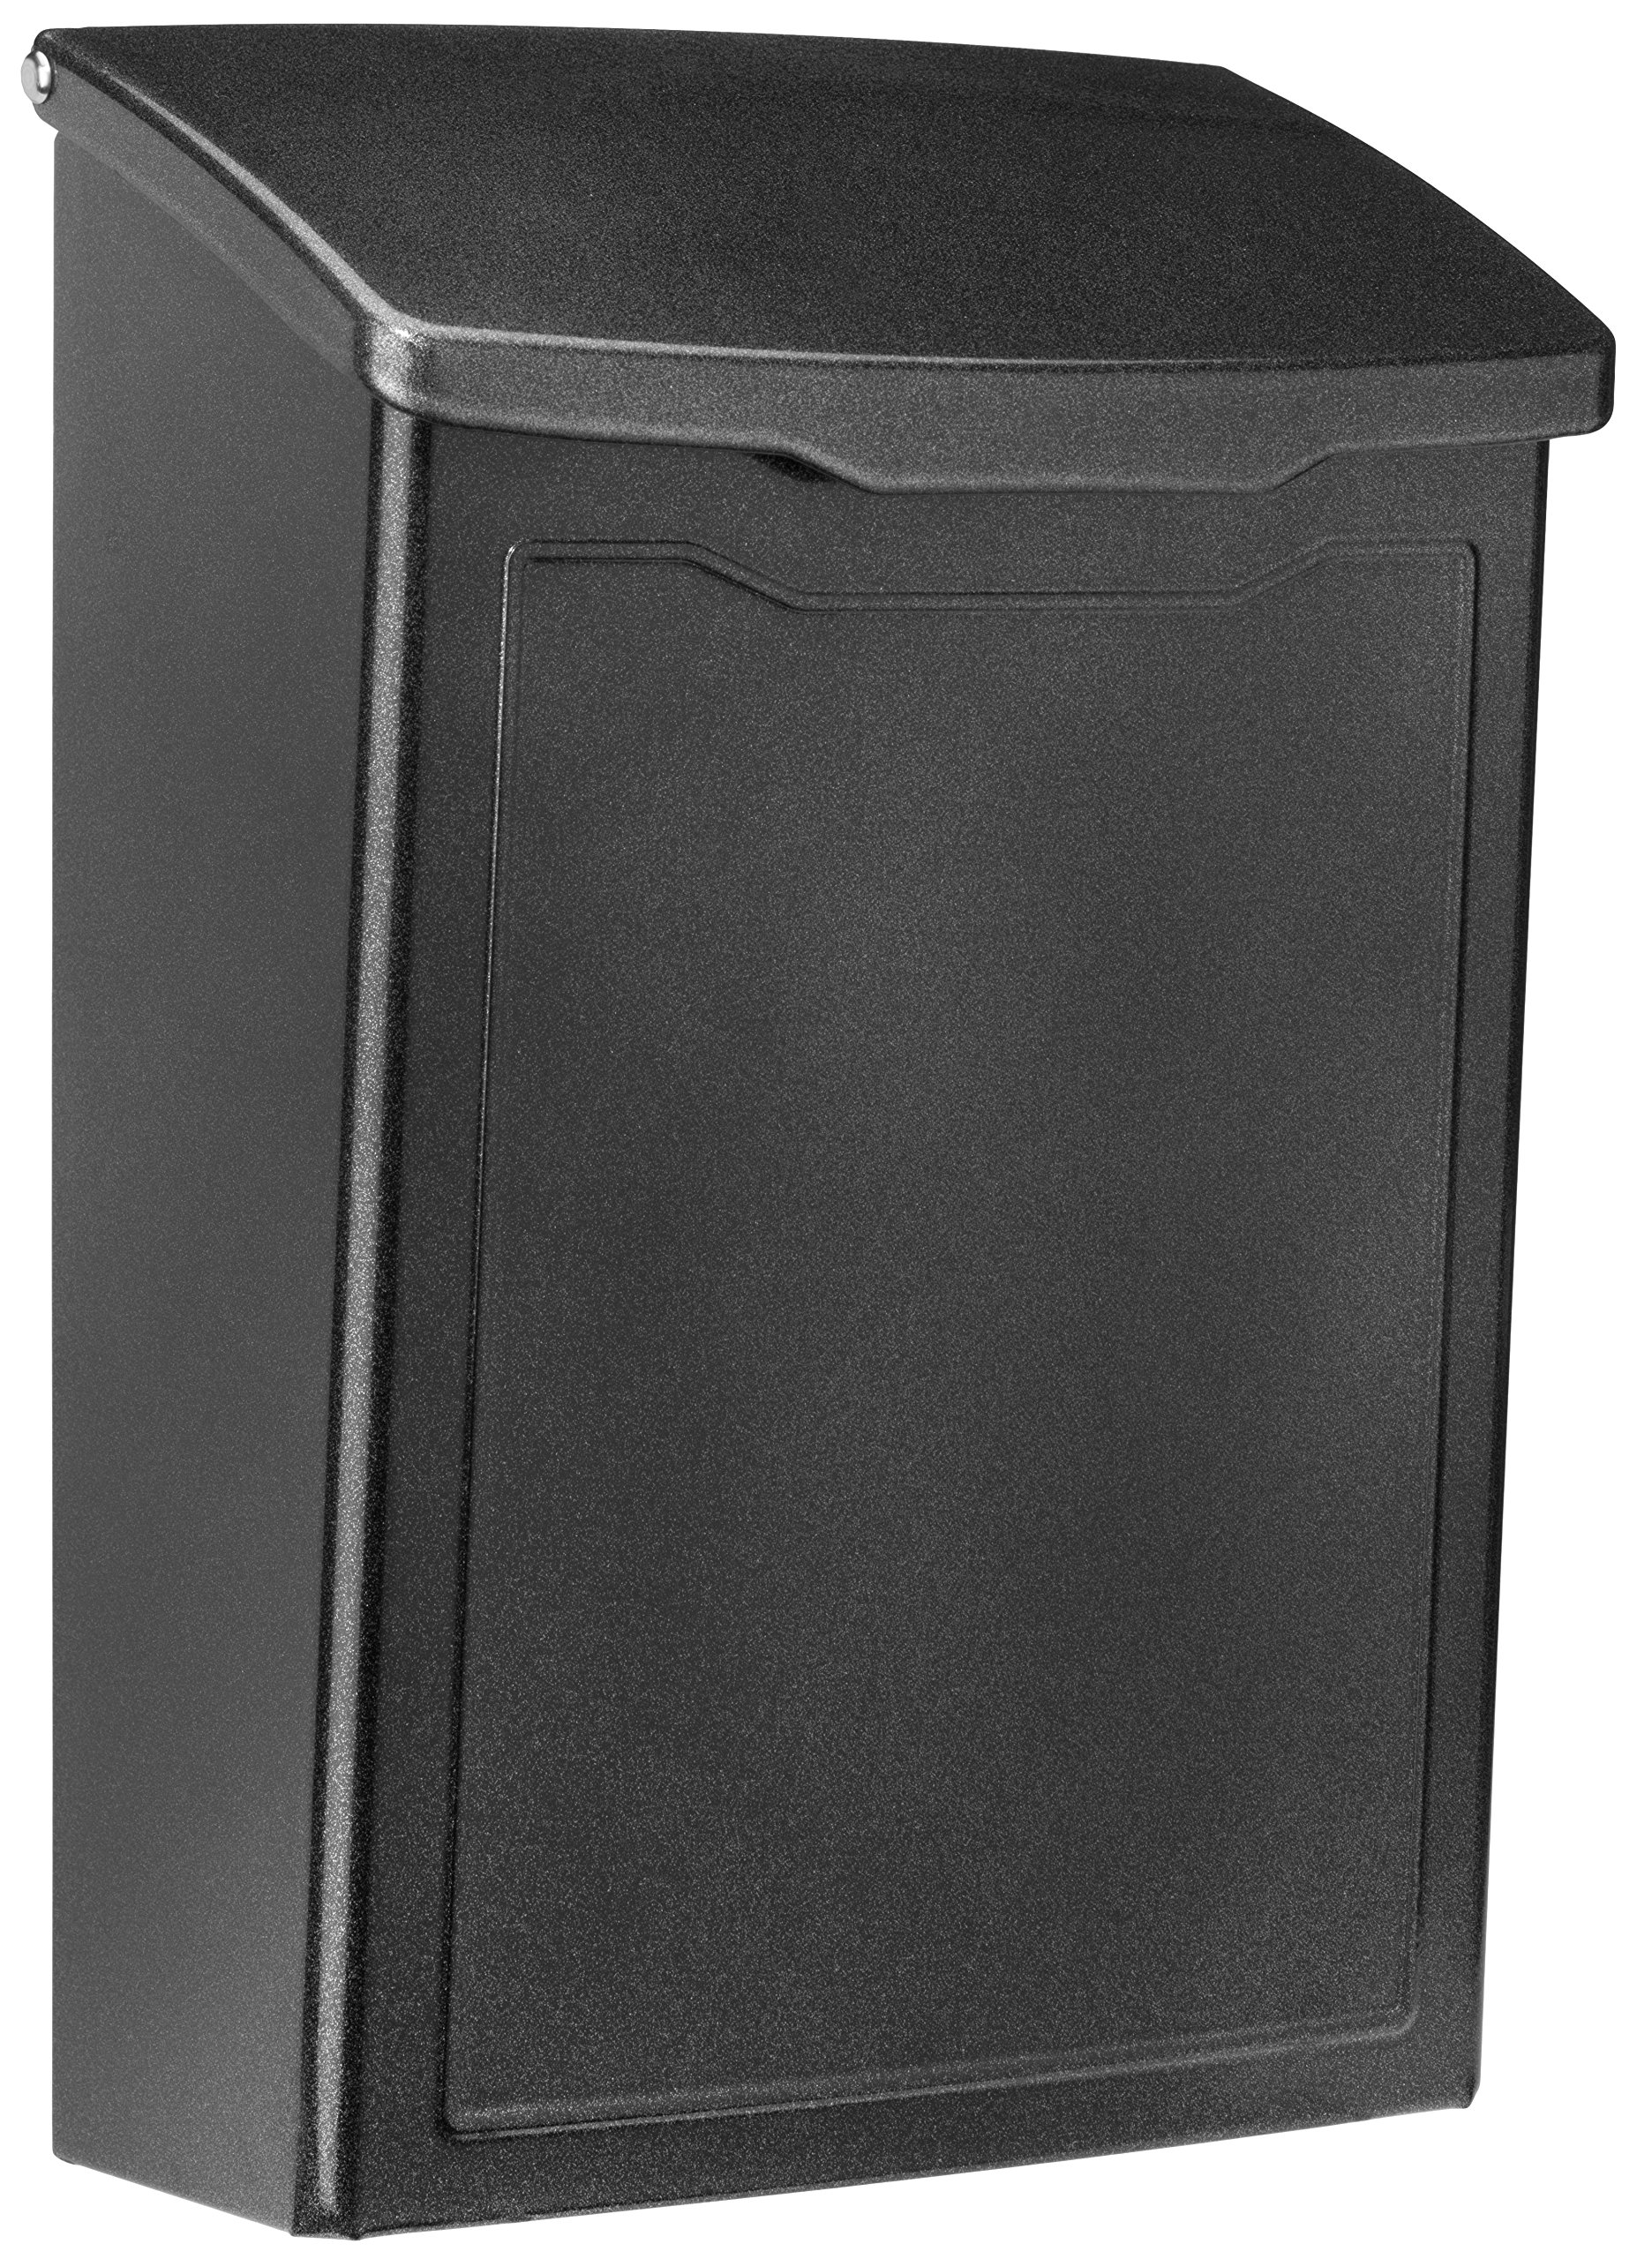 ARCHITECTURAL MAILBOXES 2681P Architectural Mailboxes Marina Wall Mount Mailbox Marina Wall Mount Mailbox, Small, Pewter